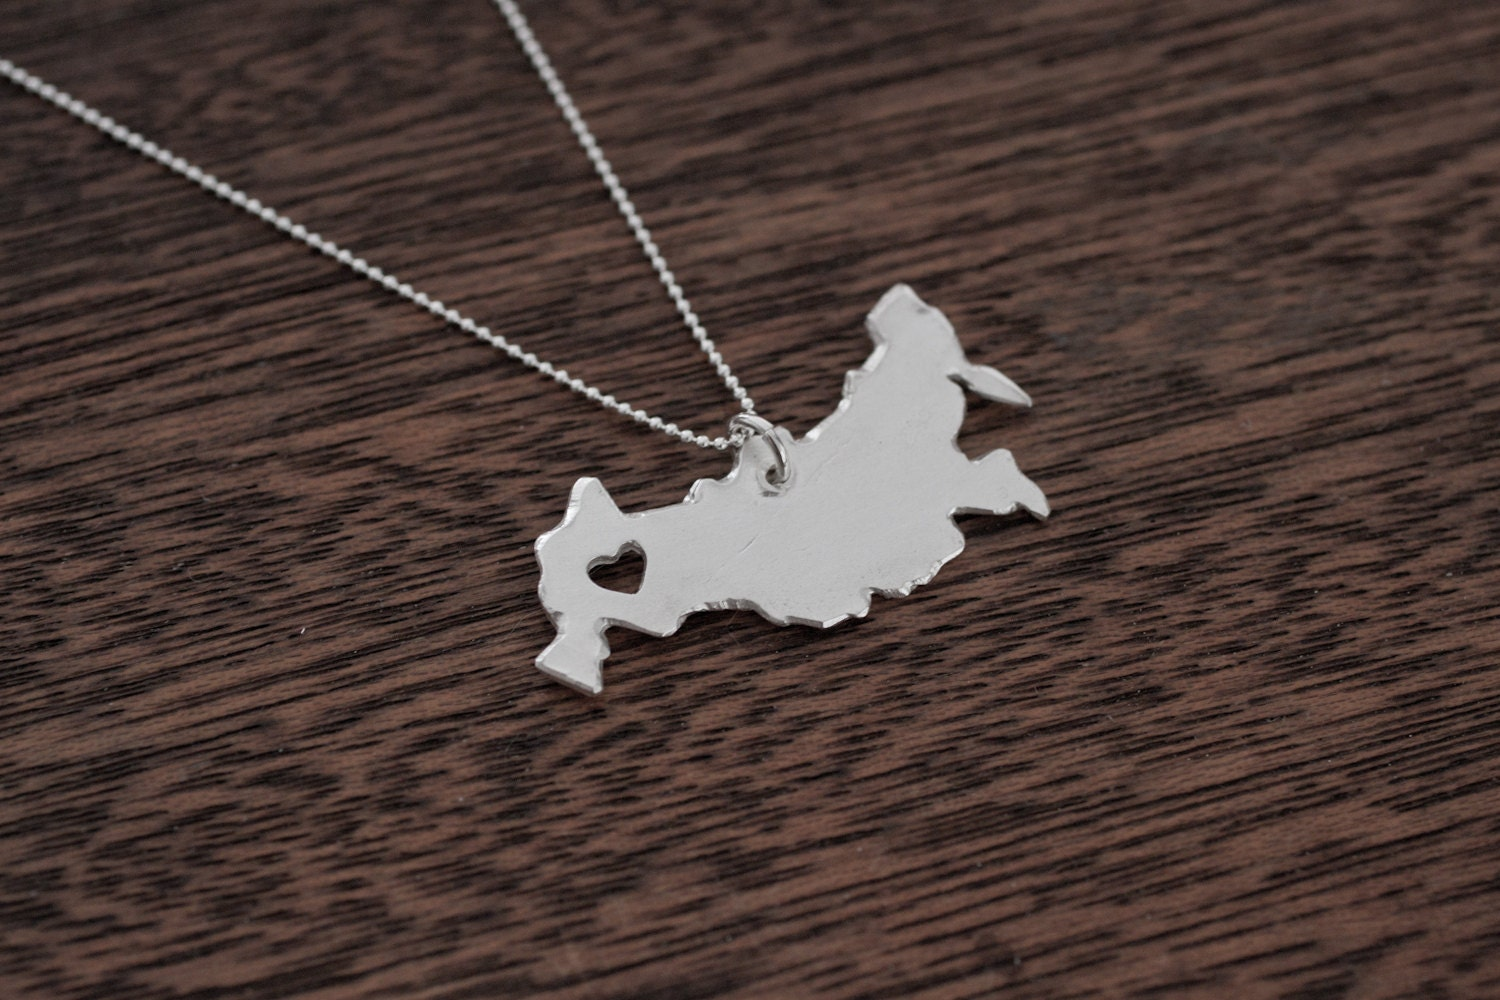 Map Necklace Etsy - Chicago map necklace